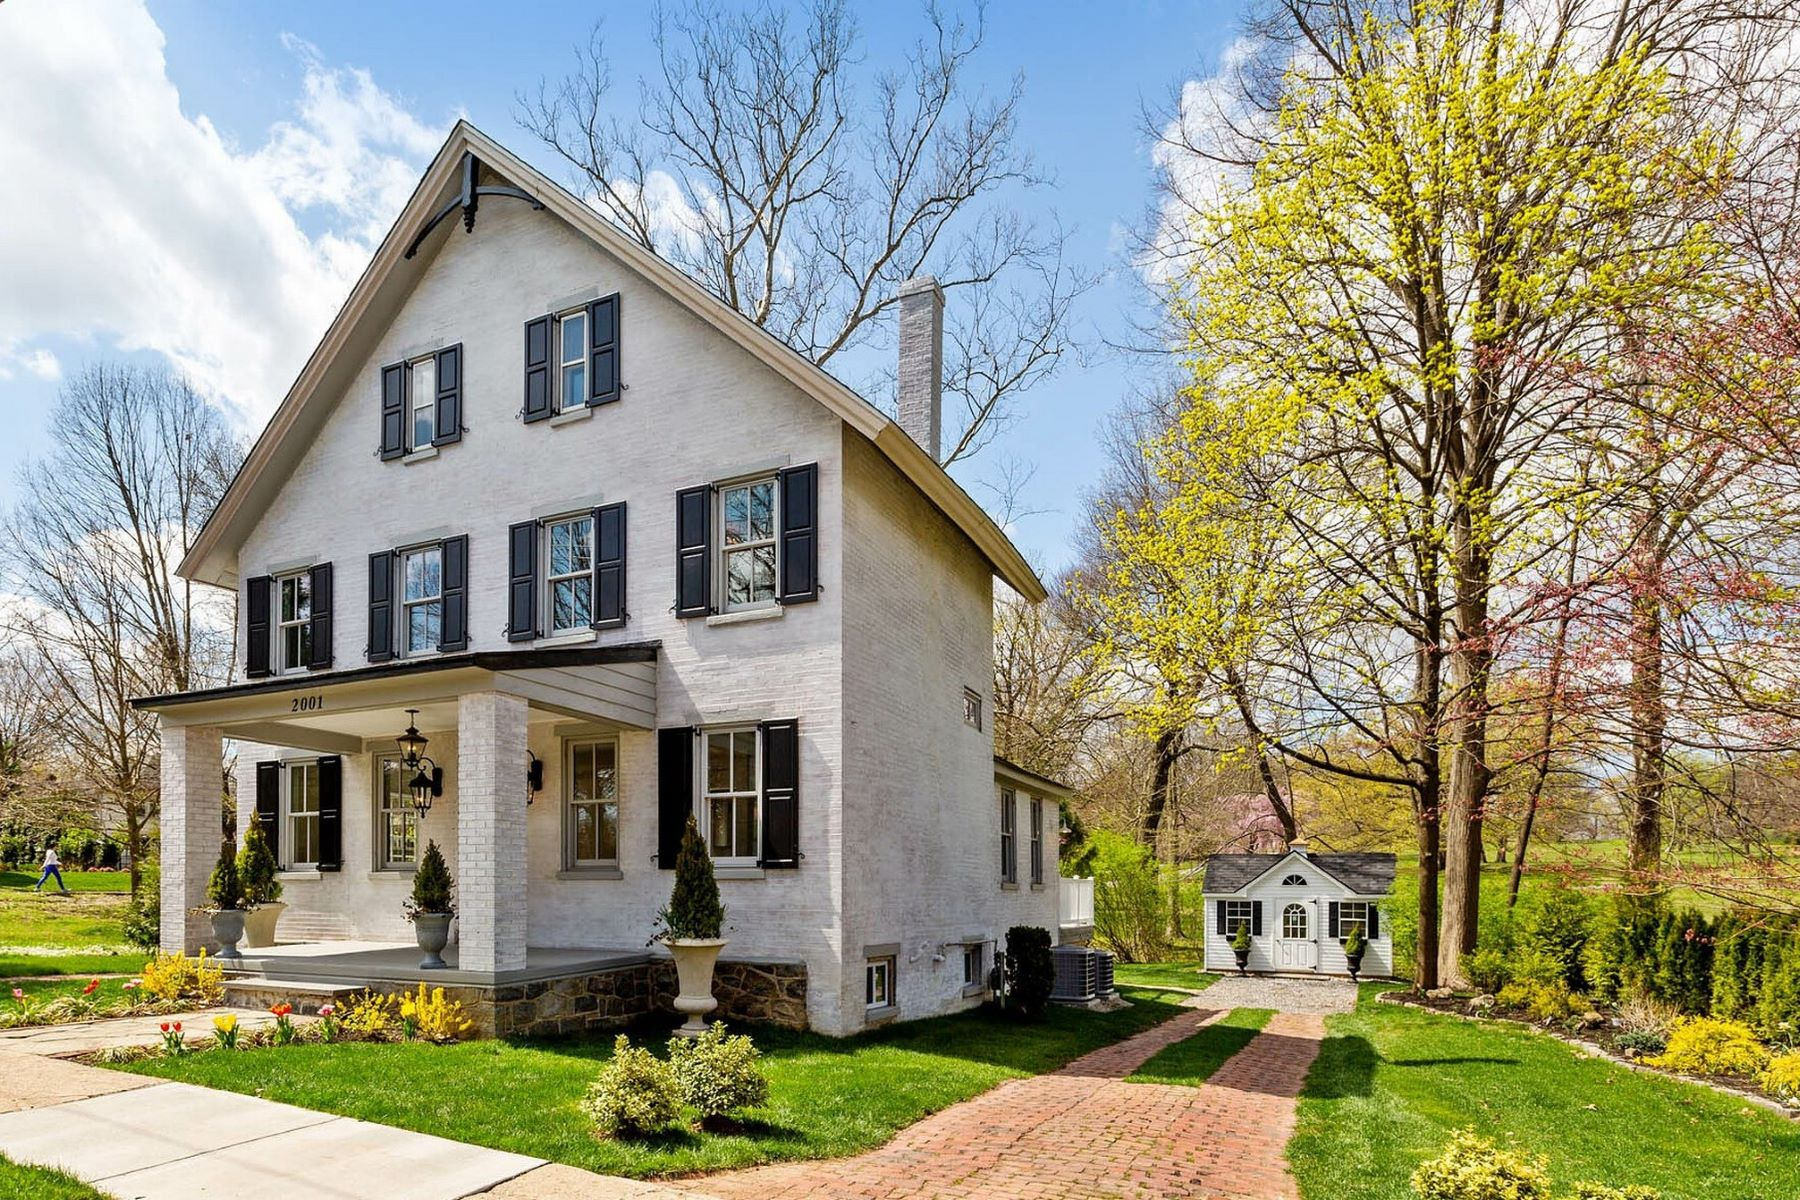 Single Family Homes for Active at 2001 Rockford Rd., Wilmington, DE 19806 2001 Rockford Rd. Wilmington, Delaware 19806 United States